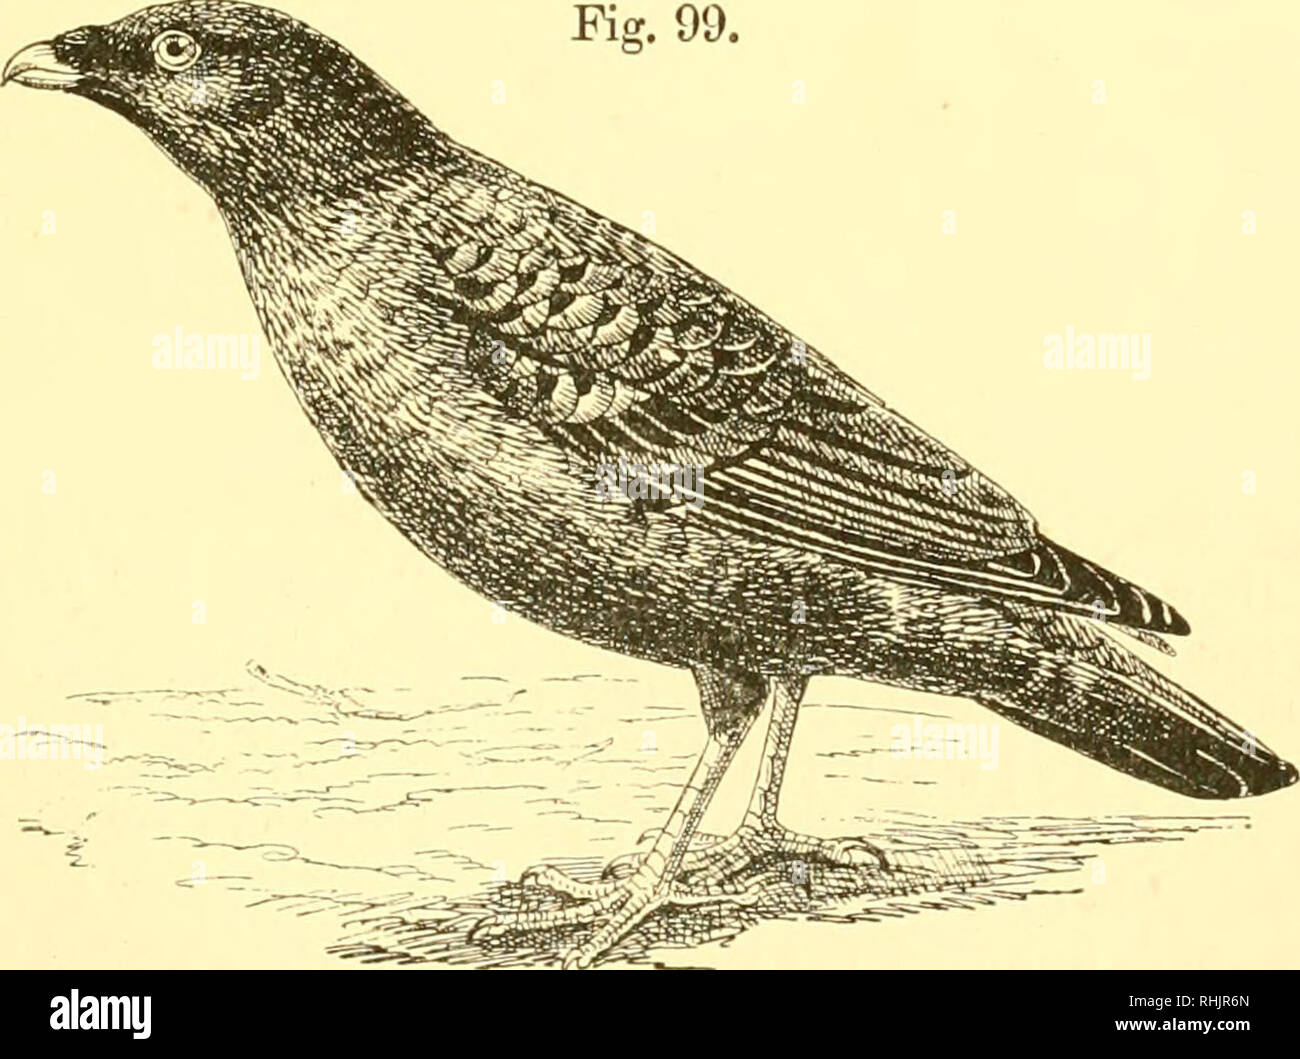 . Birds: the elements of ornithology ; with 174 illustrations whereof 140 are original drawings. Birds; Birds. The Huia-bii'd {Heteralocha acutirostris), Fiff. 99.. The Satin Uower-bird {PiUonorhi/nchus violacetts).. Please note that these images are extracted from scanned page images that may have been digitally enhanced for readability - coloration and appearance of these illustrations may not perfectly resemble the original work.. Mivart, St. George Jackson, 1827-1900. London : R. H. Porter Stock Photo